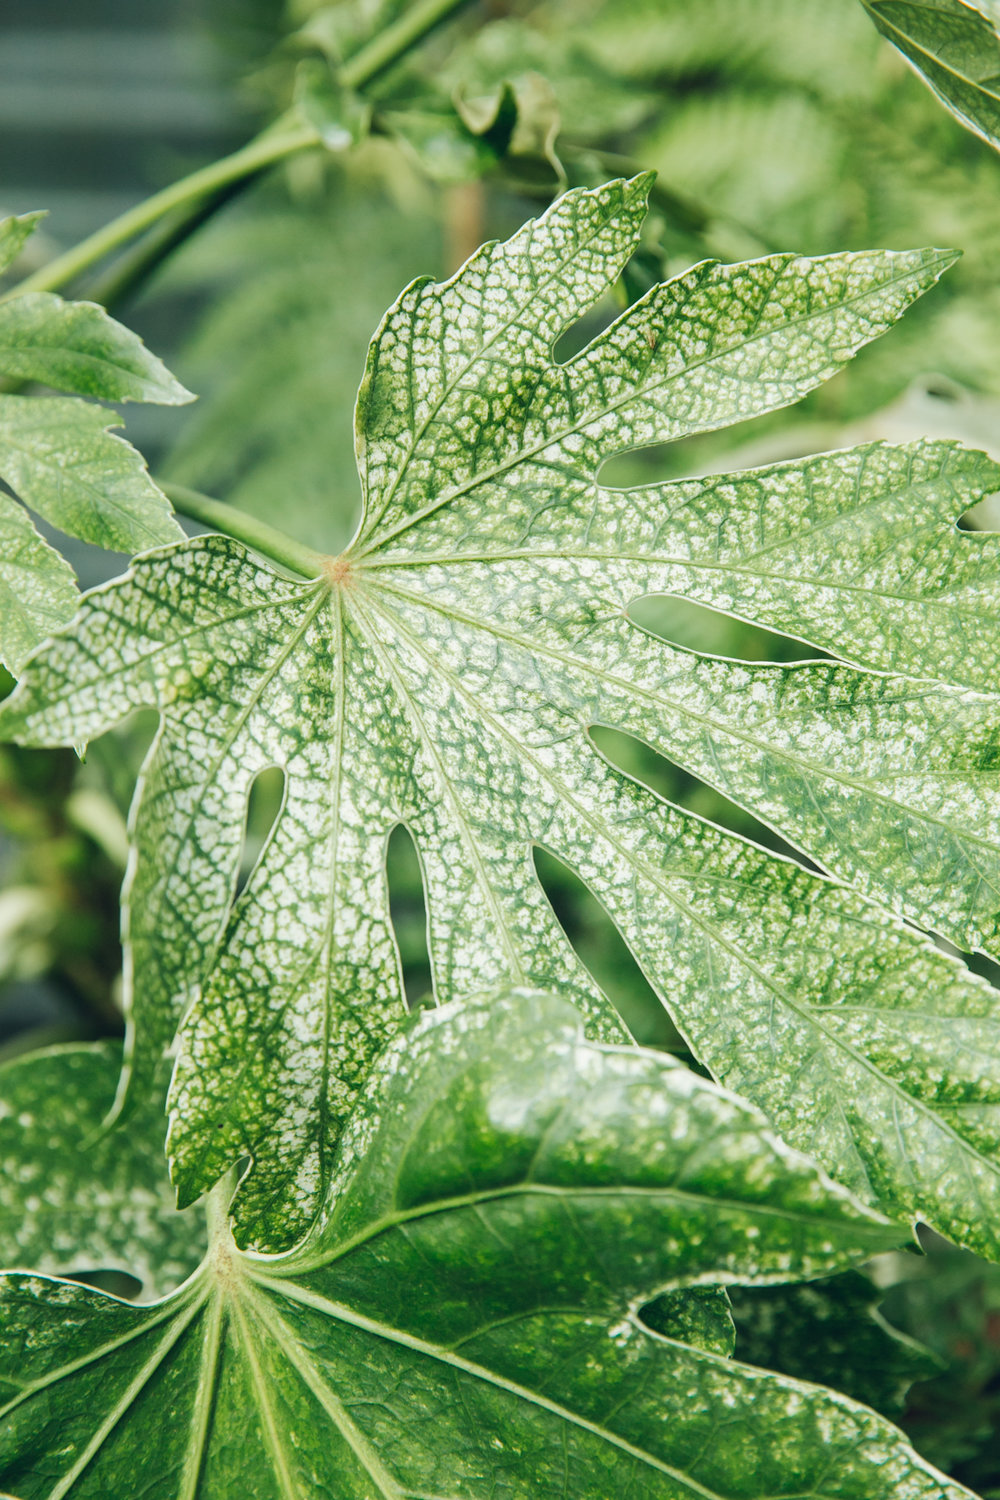 Variegated Fatsia Japonica leaves